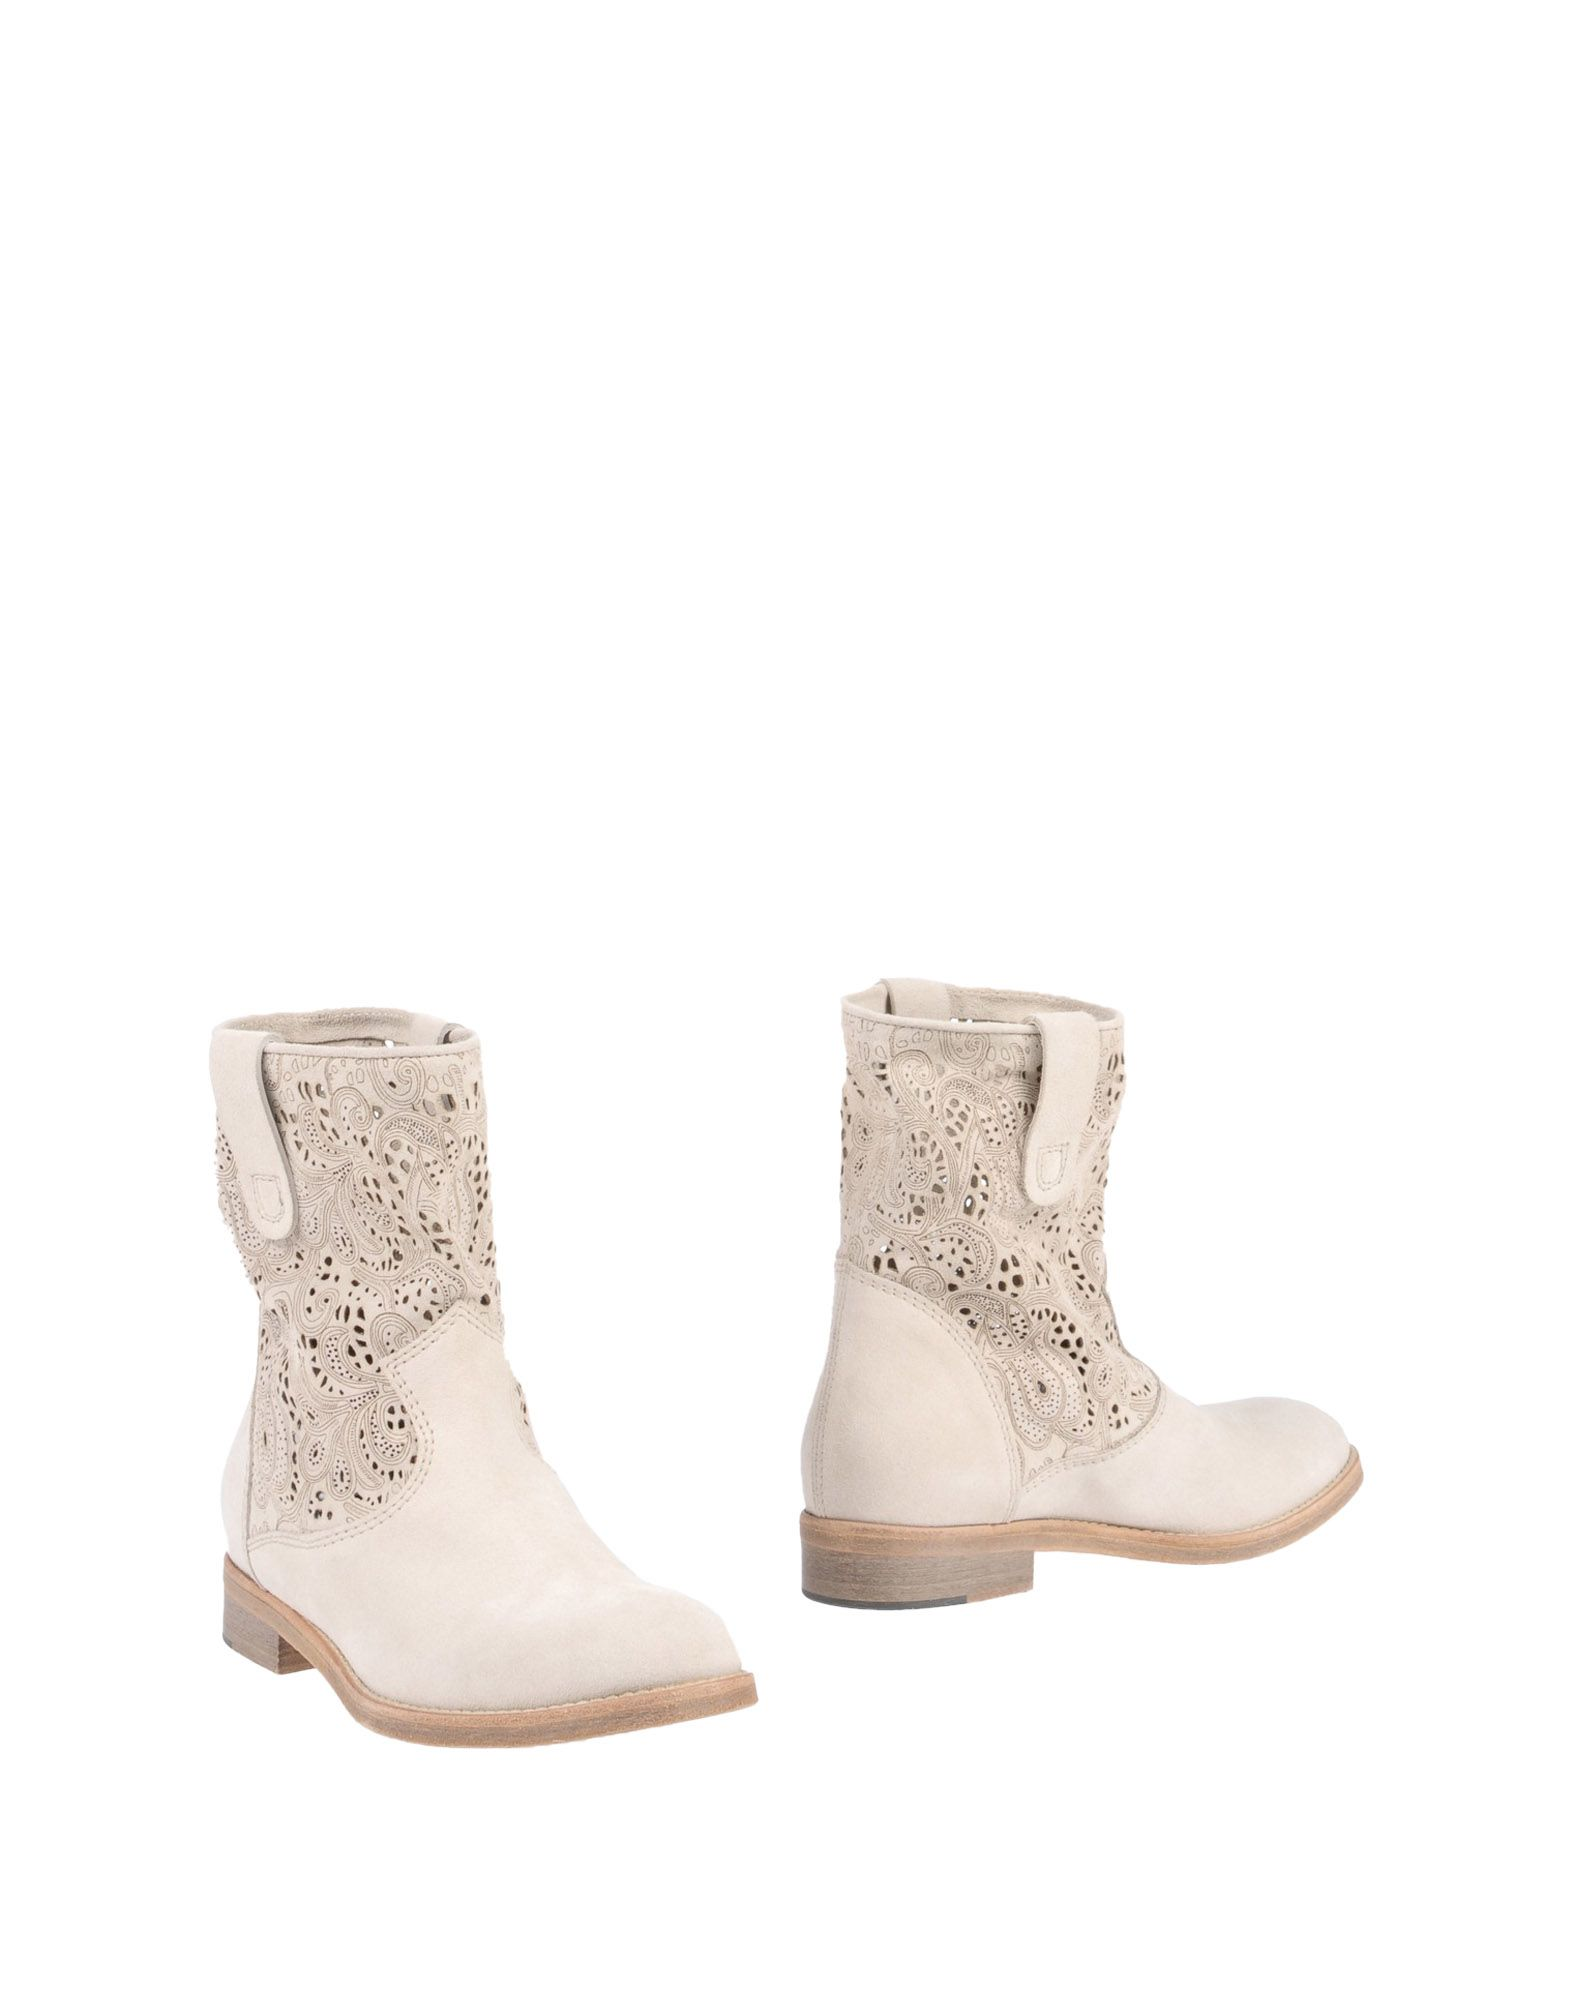 PETER FLOWERS Ankle Boot in Beige